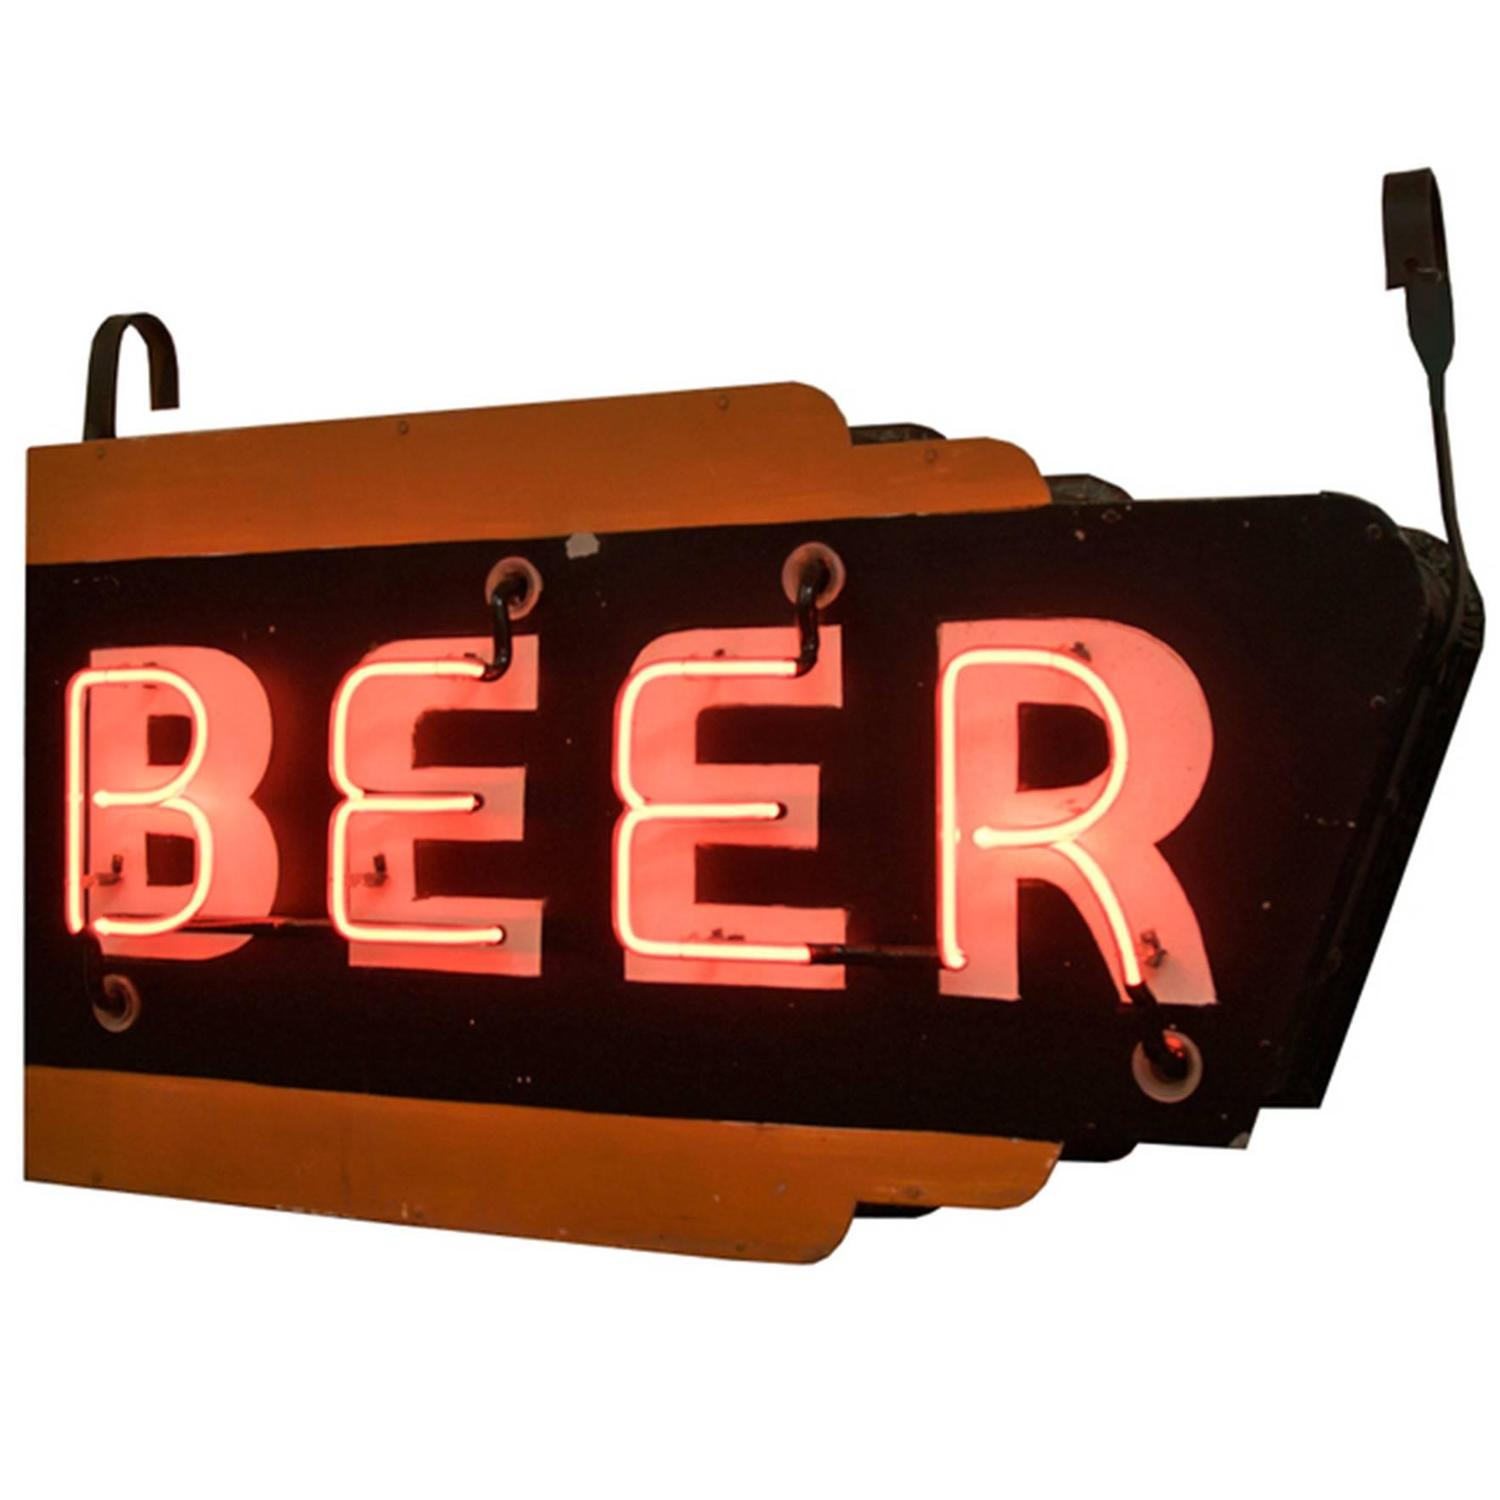 neon beer sign signs double sided orange circa 1940s advertising open antique furniture 1stdibs closed jewelry magazine